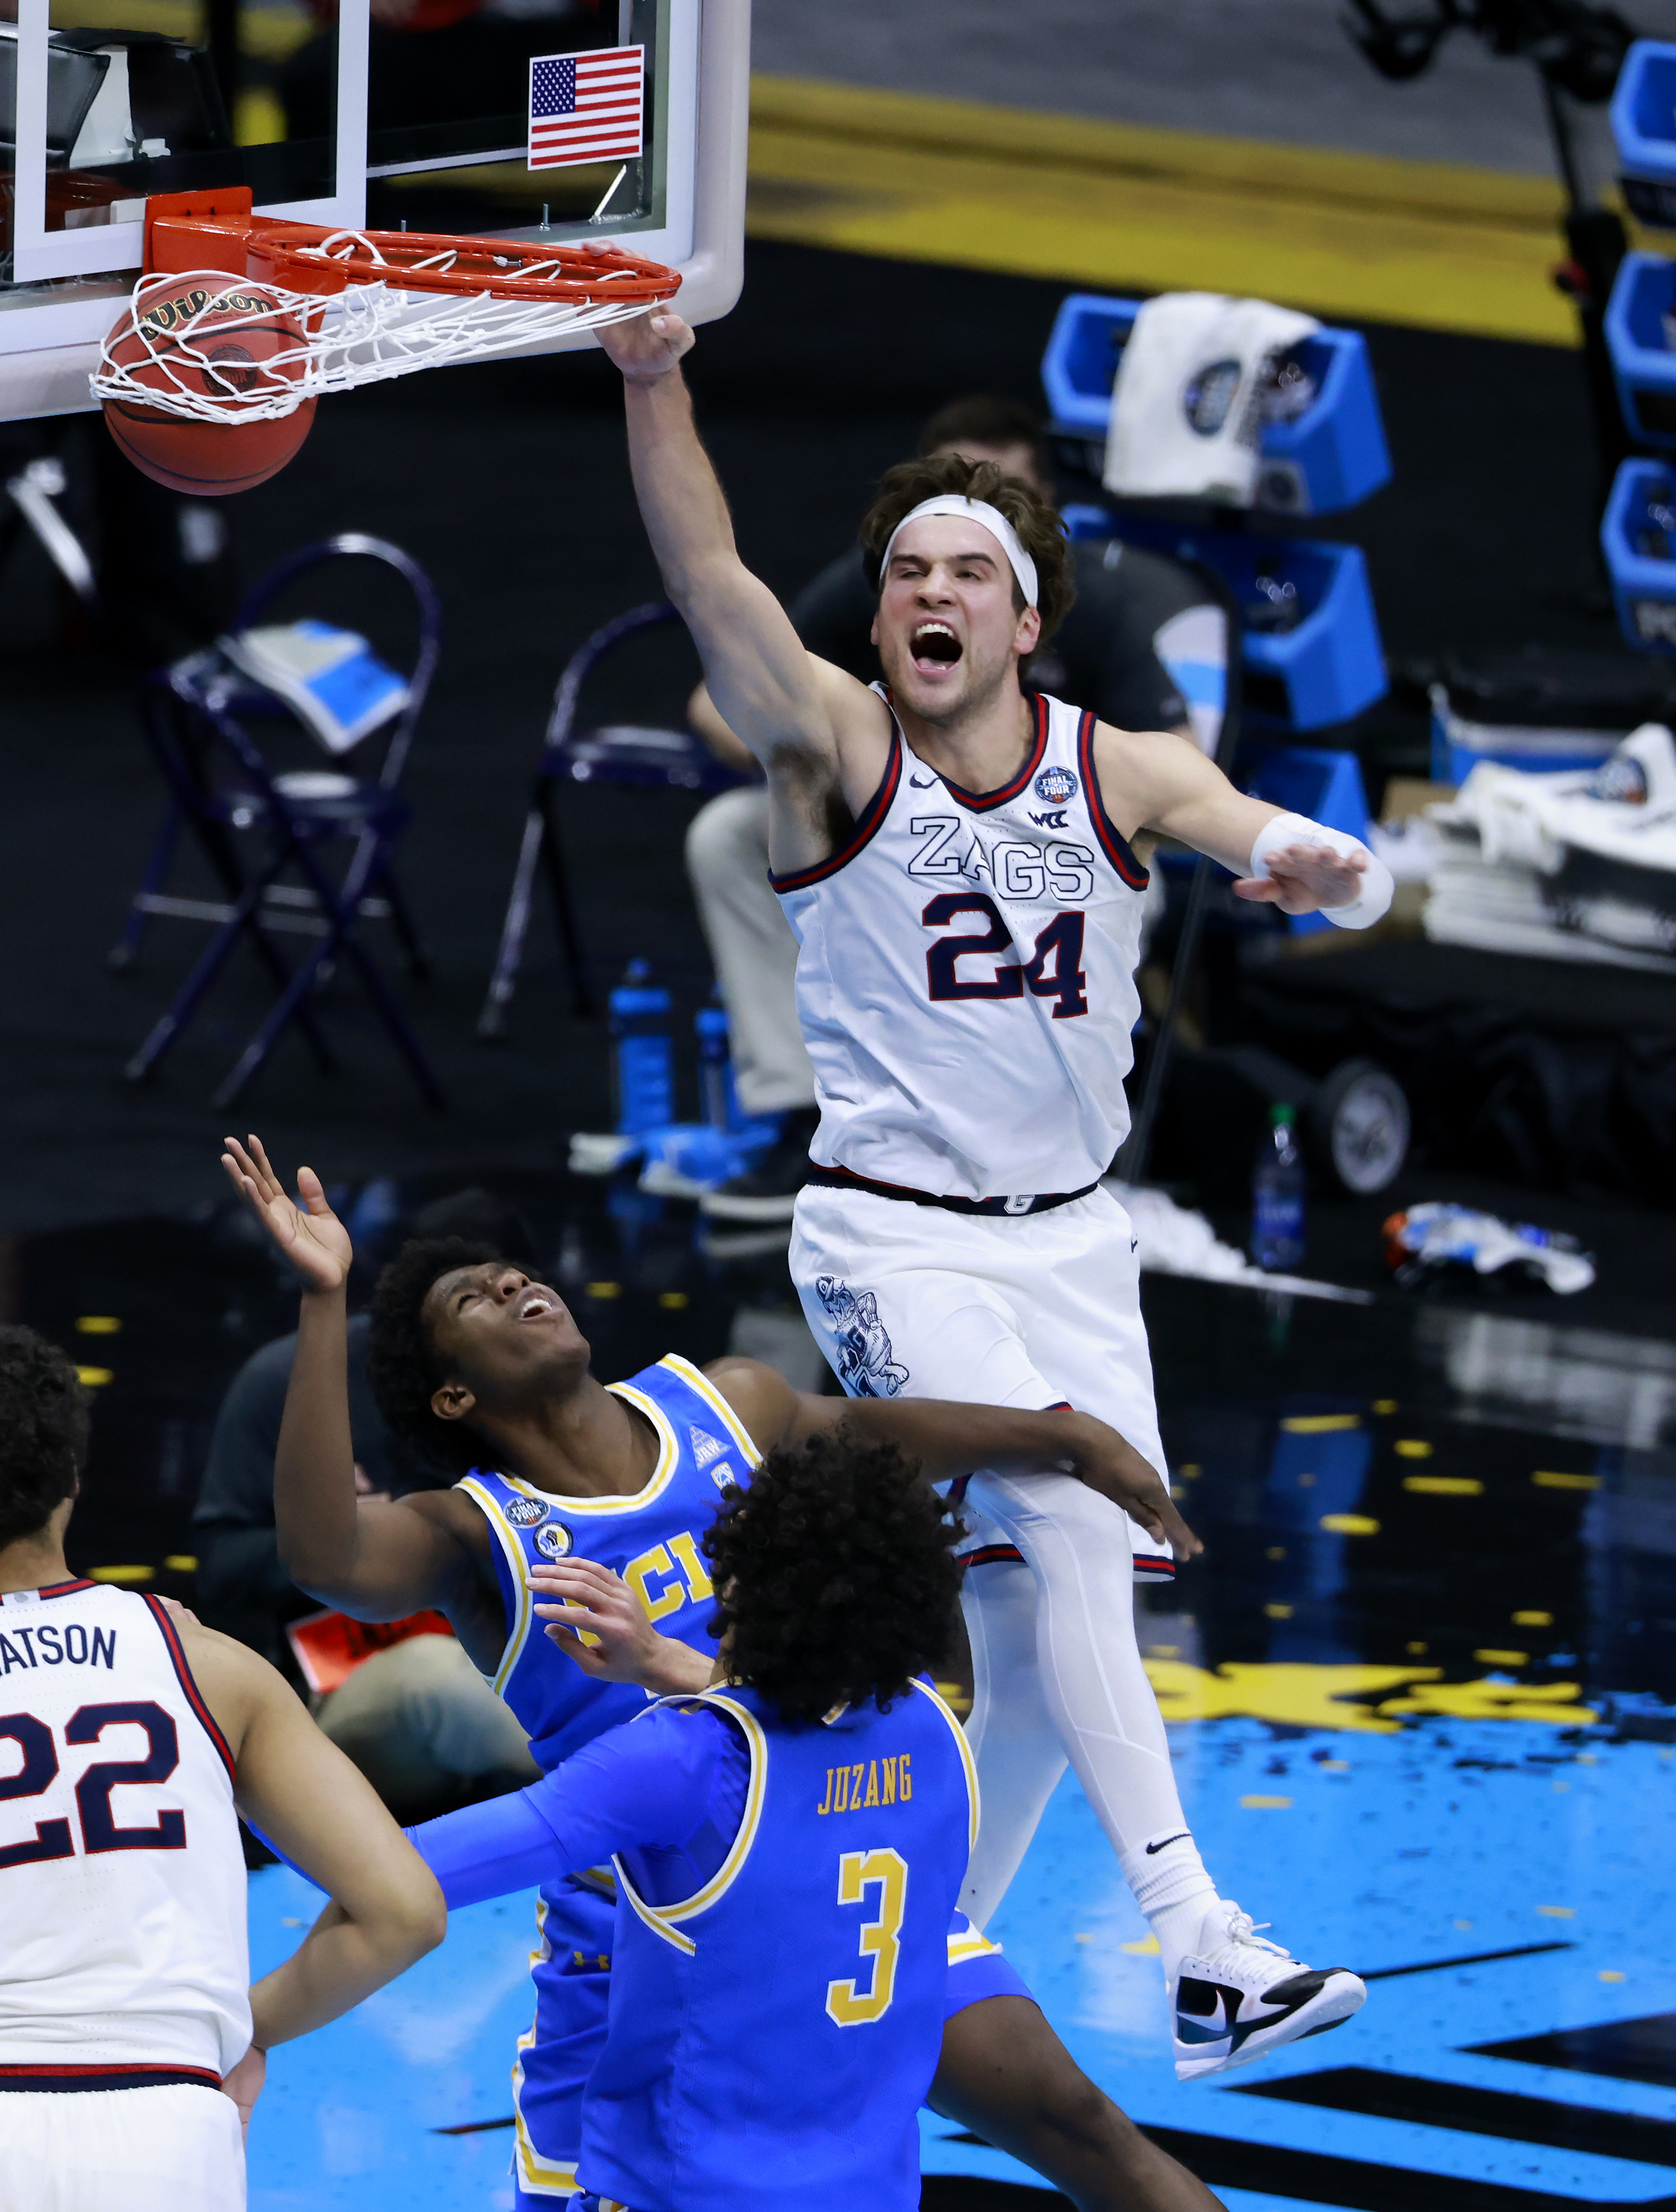 Corey Kispert of the Gonzaga Bulldogs dunks the ball against David Singleton #34 of the UCLA Bruins in the second half during the 2021 NCAA Final Four semifinal at Lucas Oil Stadium on April 03, 2021 in Indianapolis, Indiana.